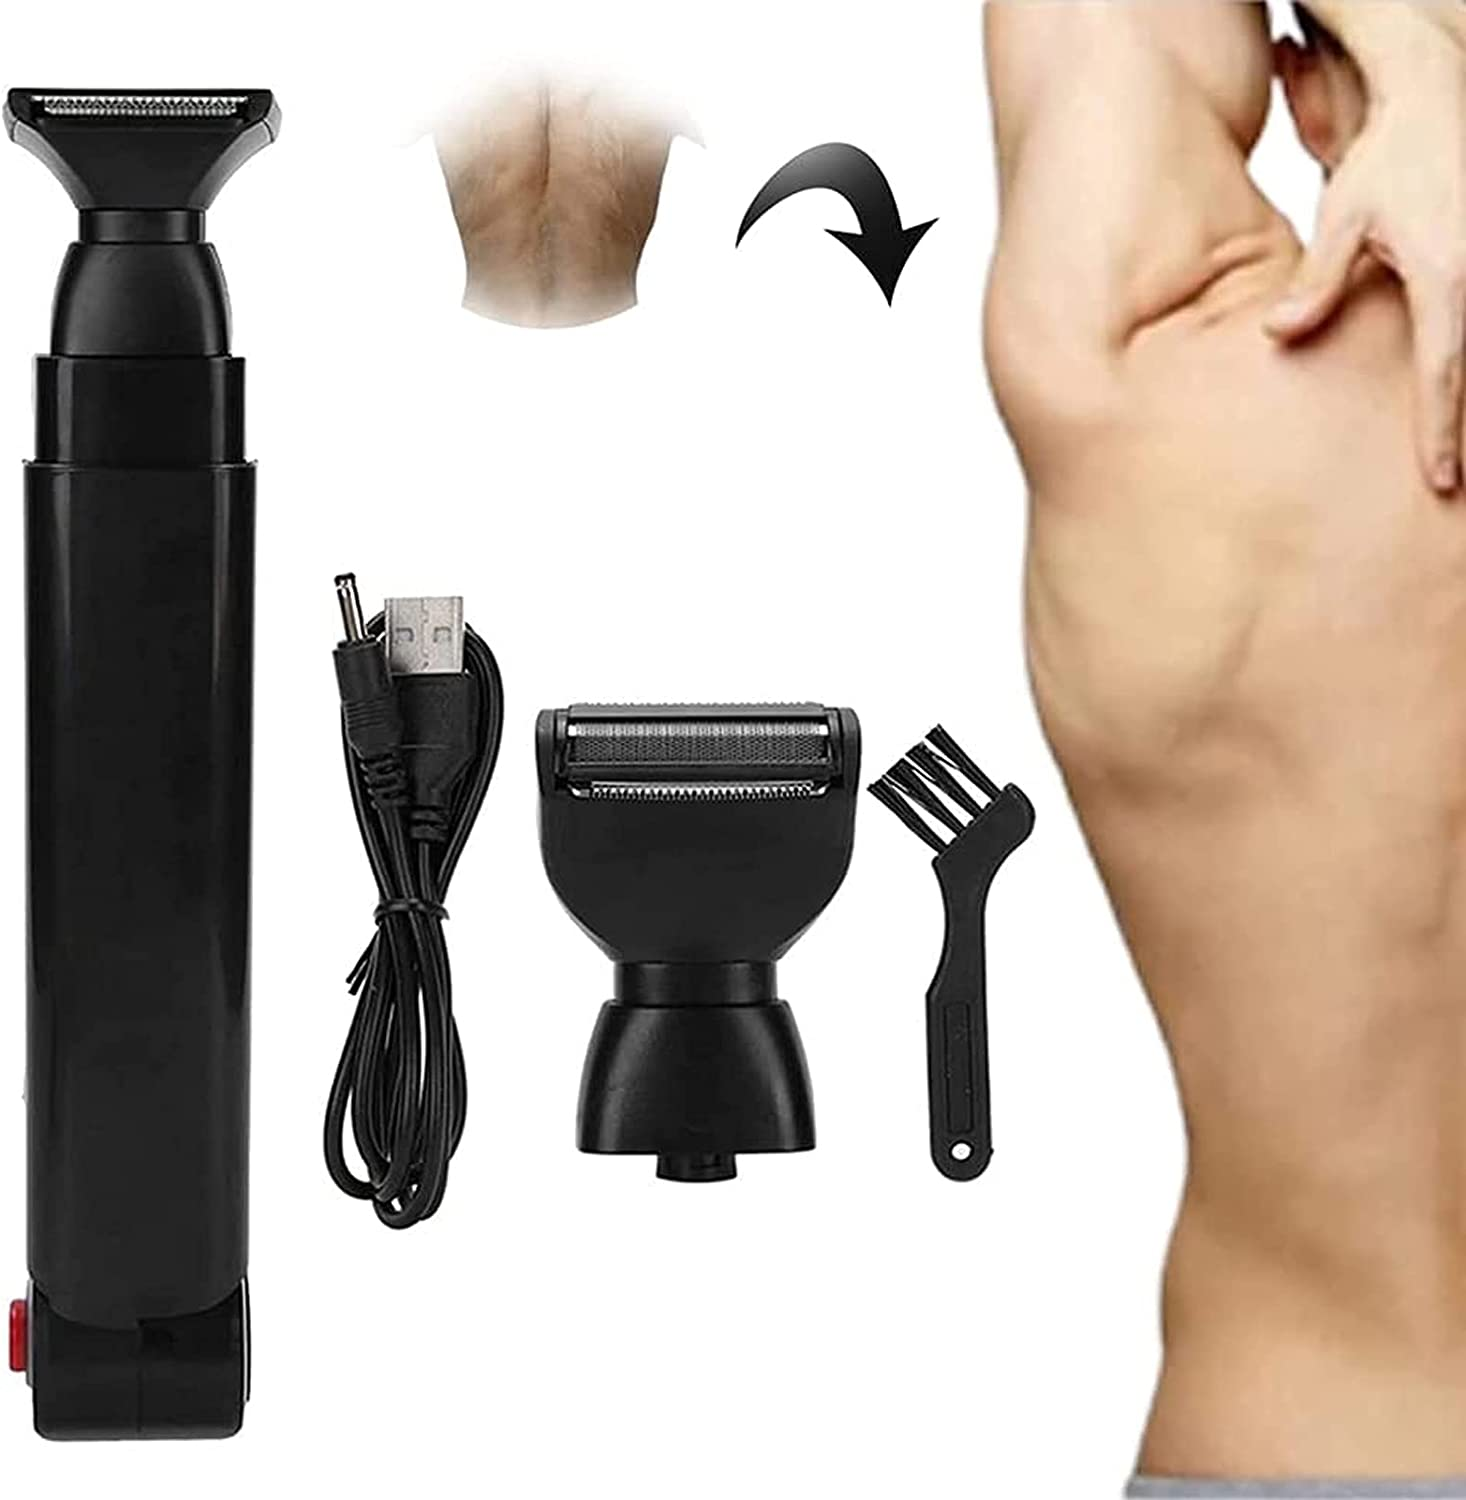 HHYGR Brand Cheap Limited price Sale Venue Electric Back Shaver Wireless USB Charging Men's